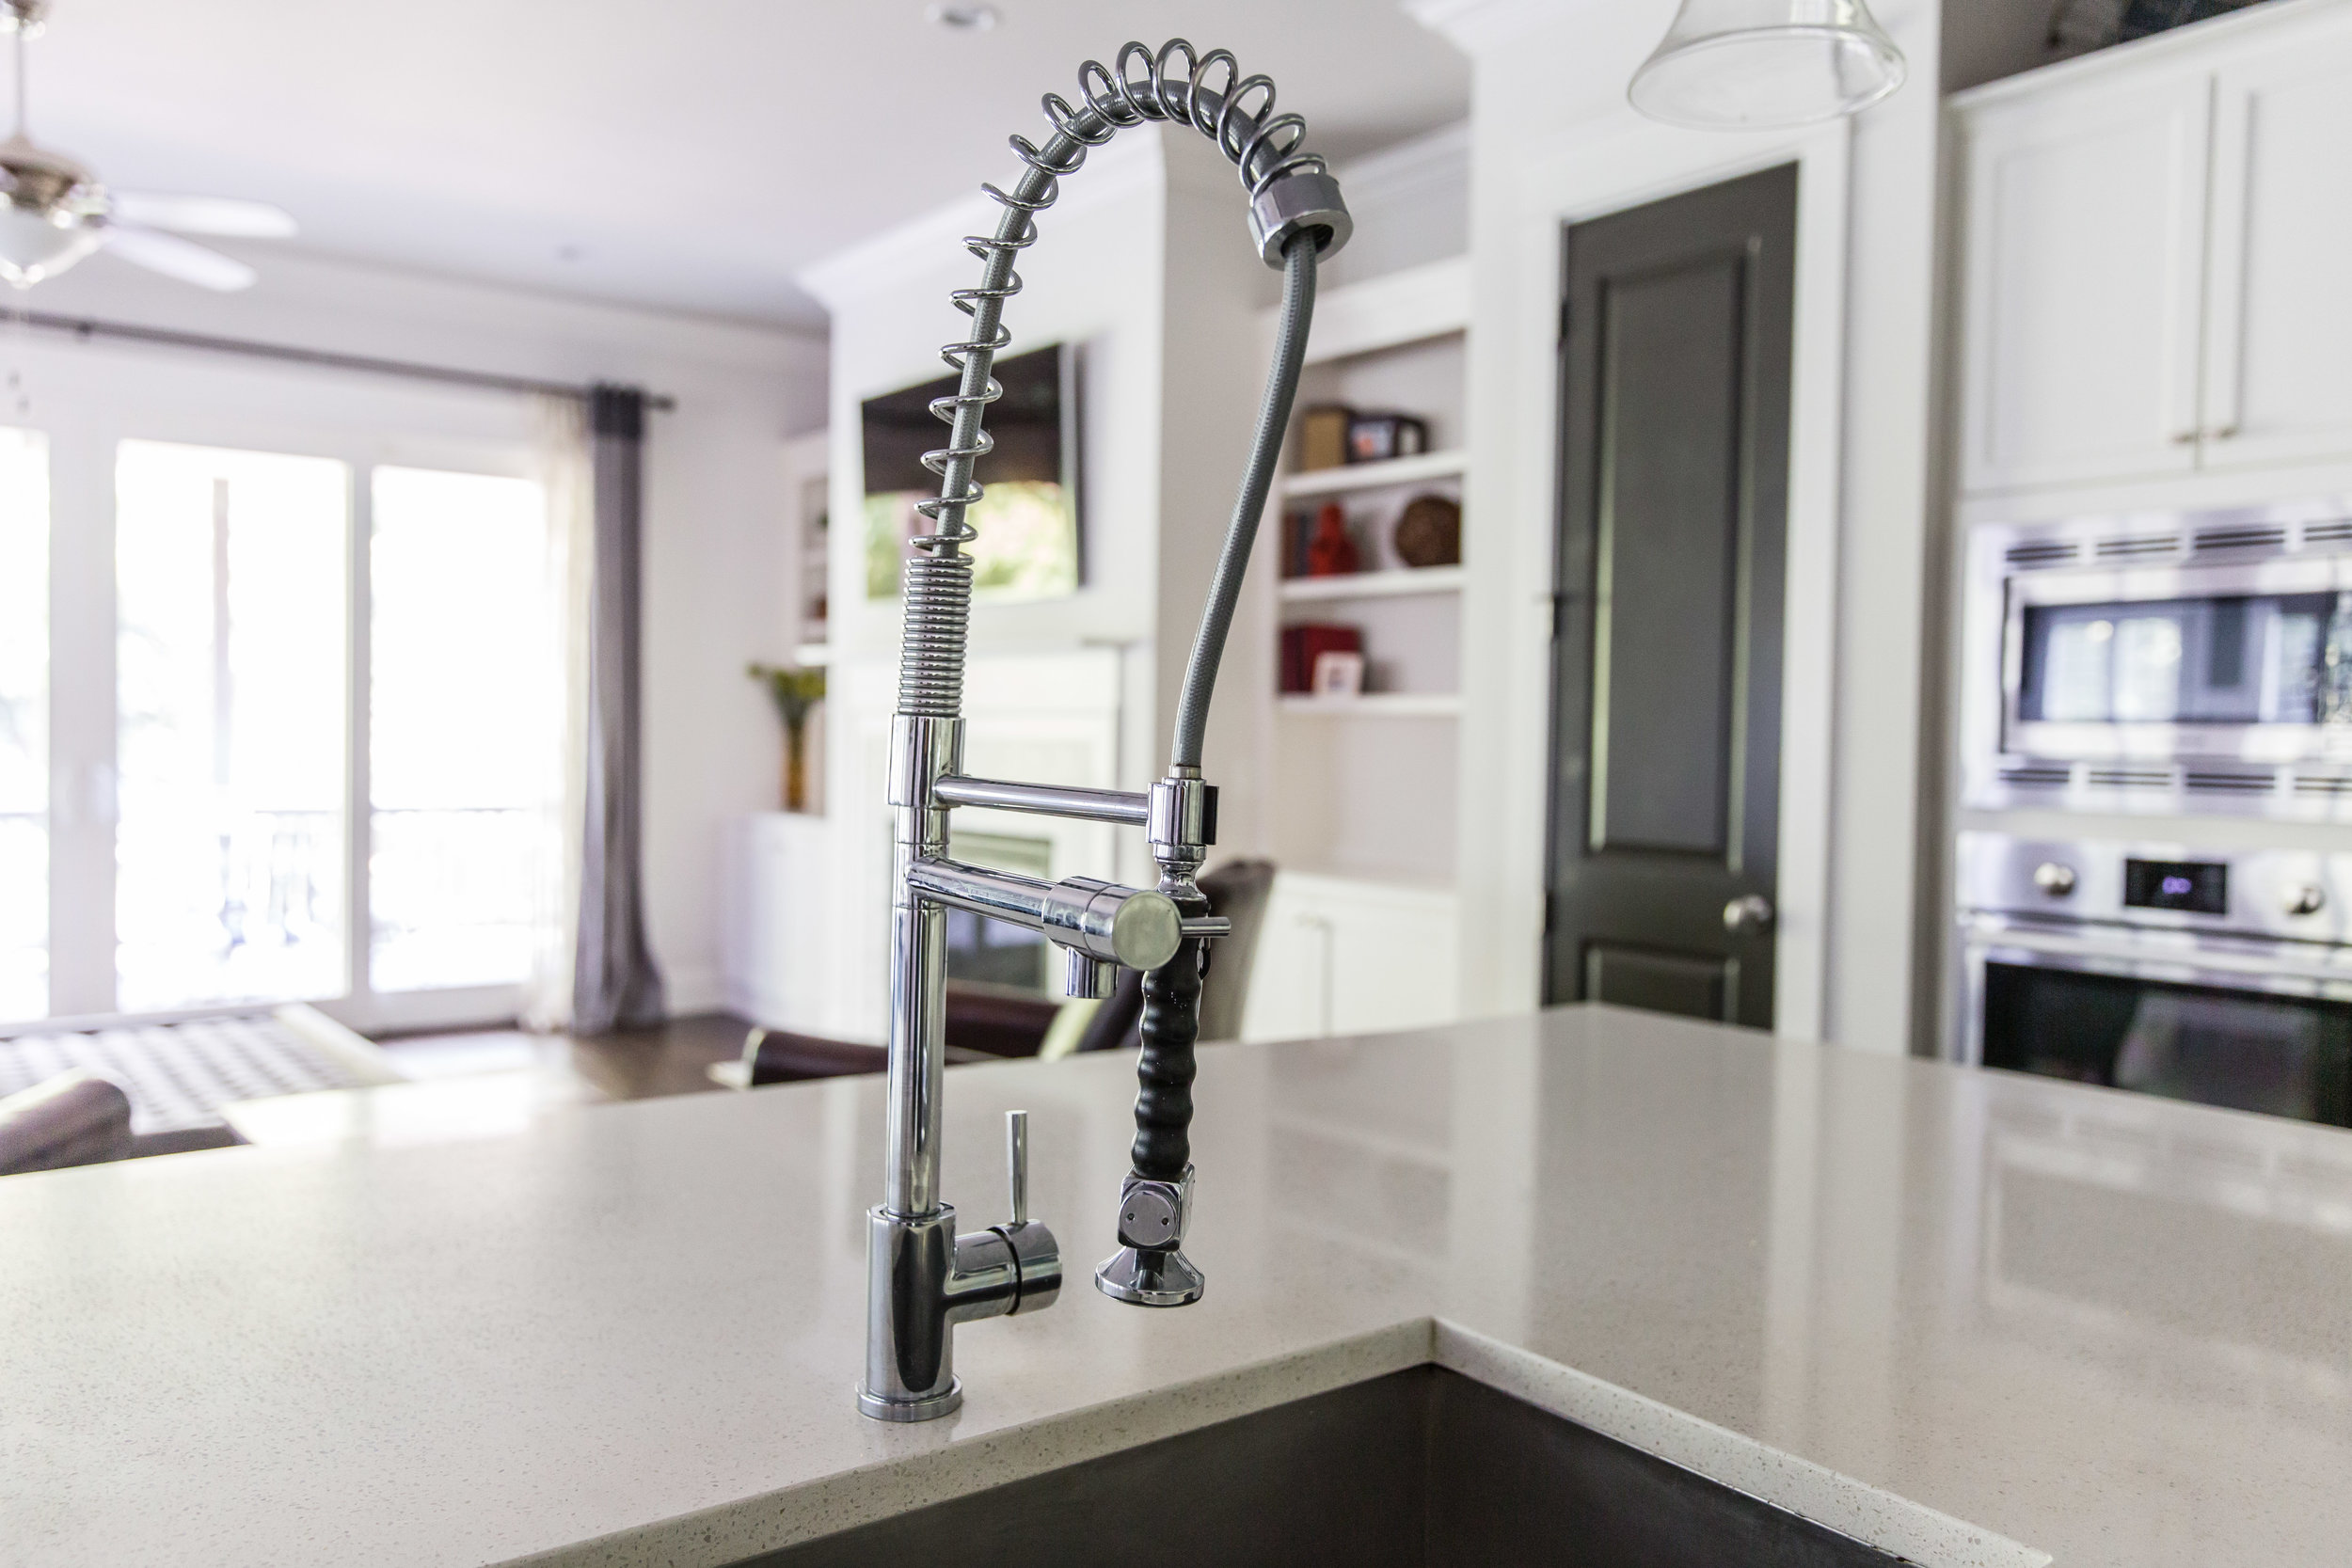 900 S Candler-Kitchen Sink.jpg